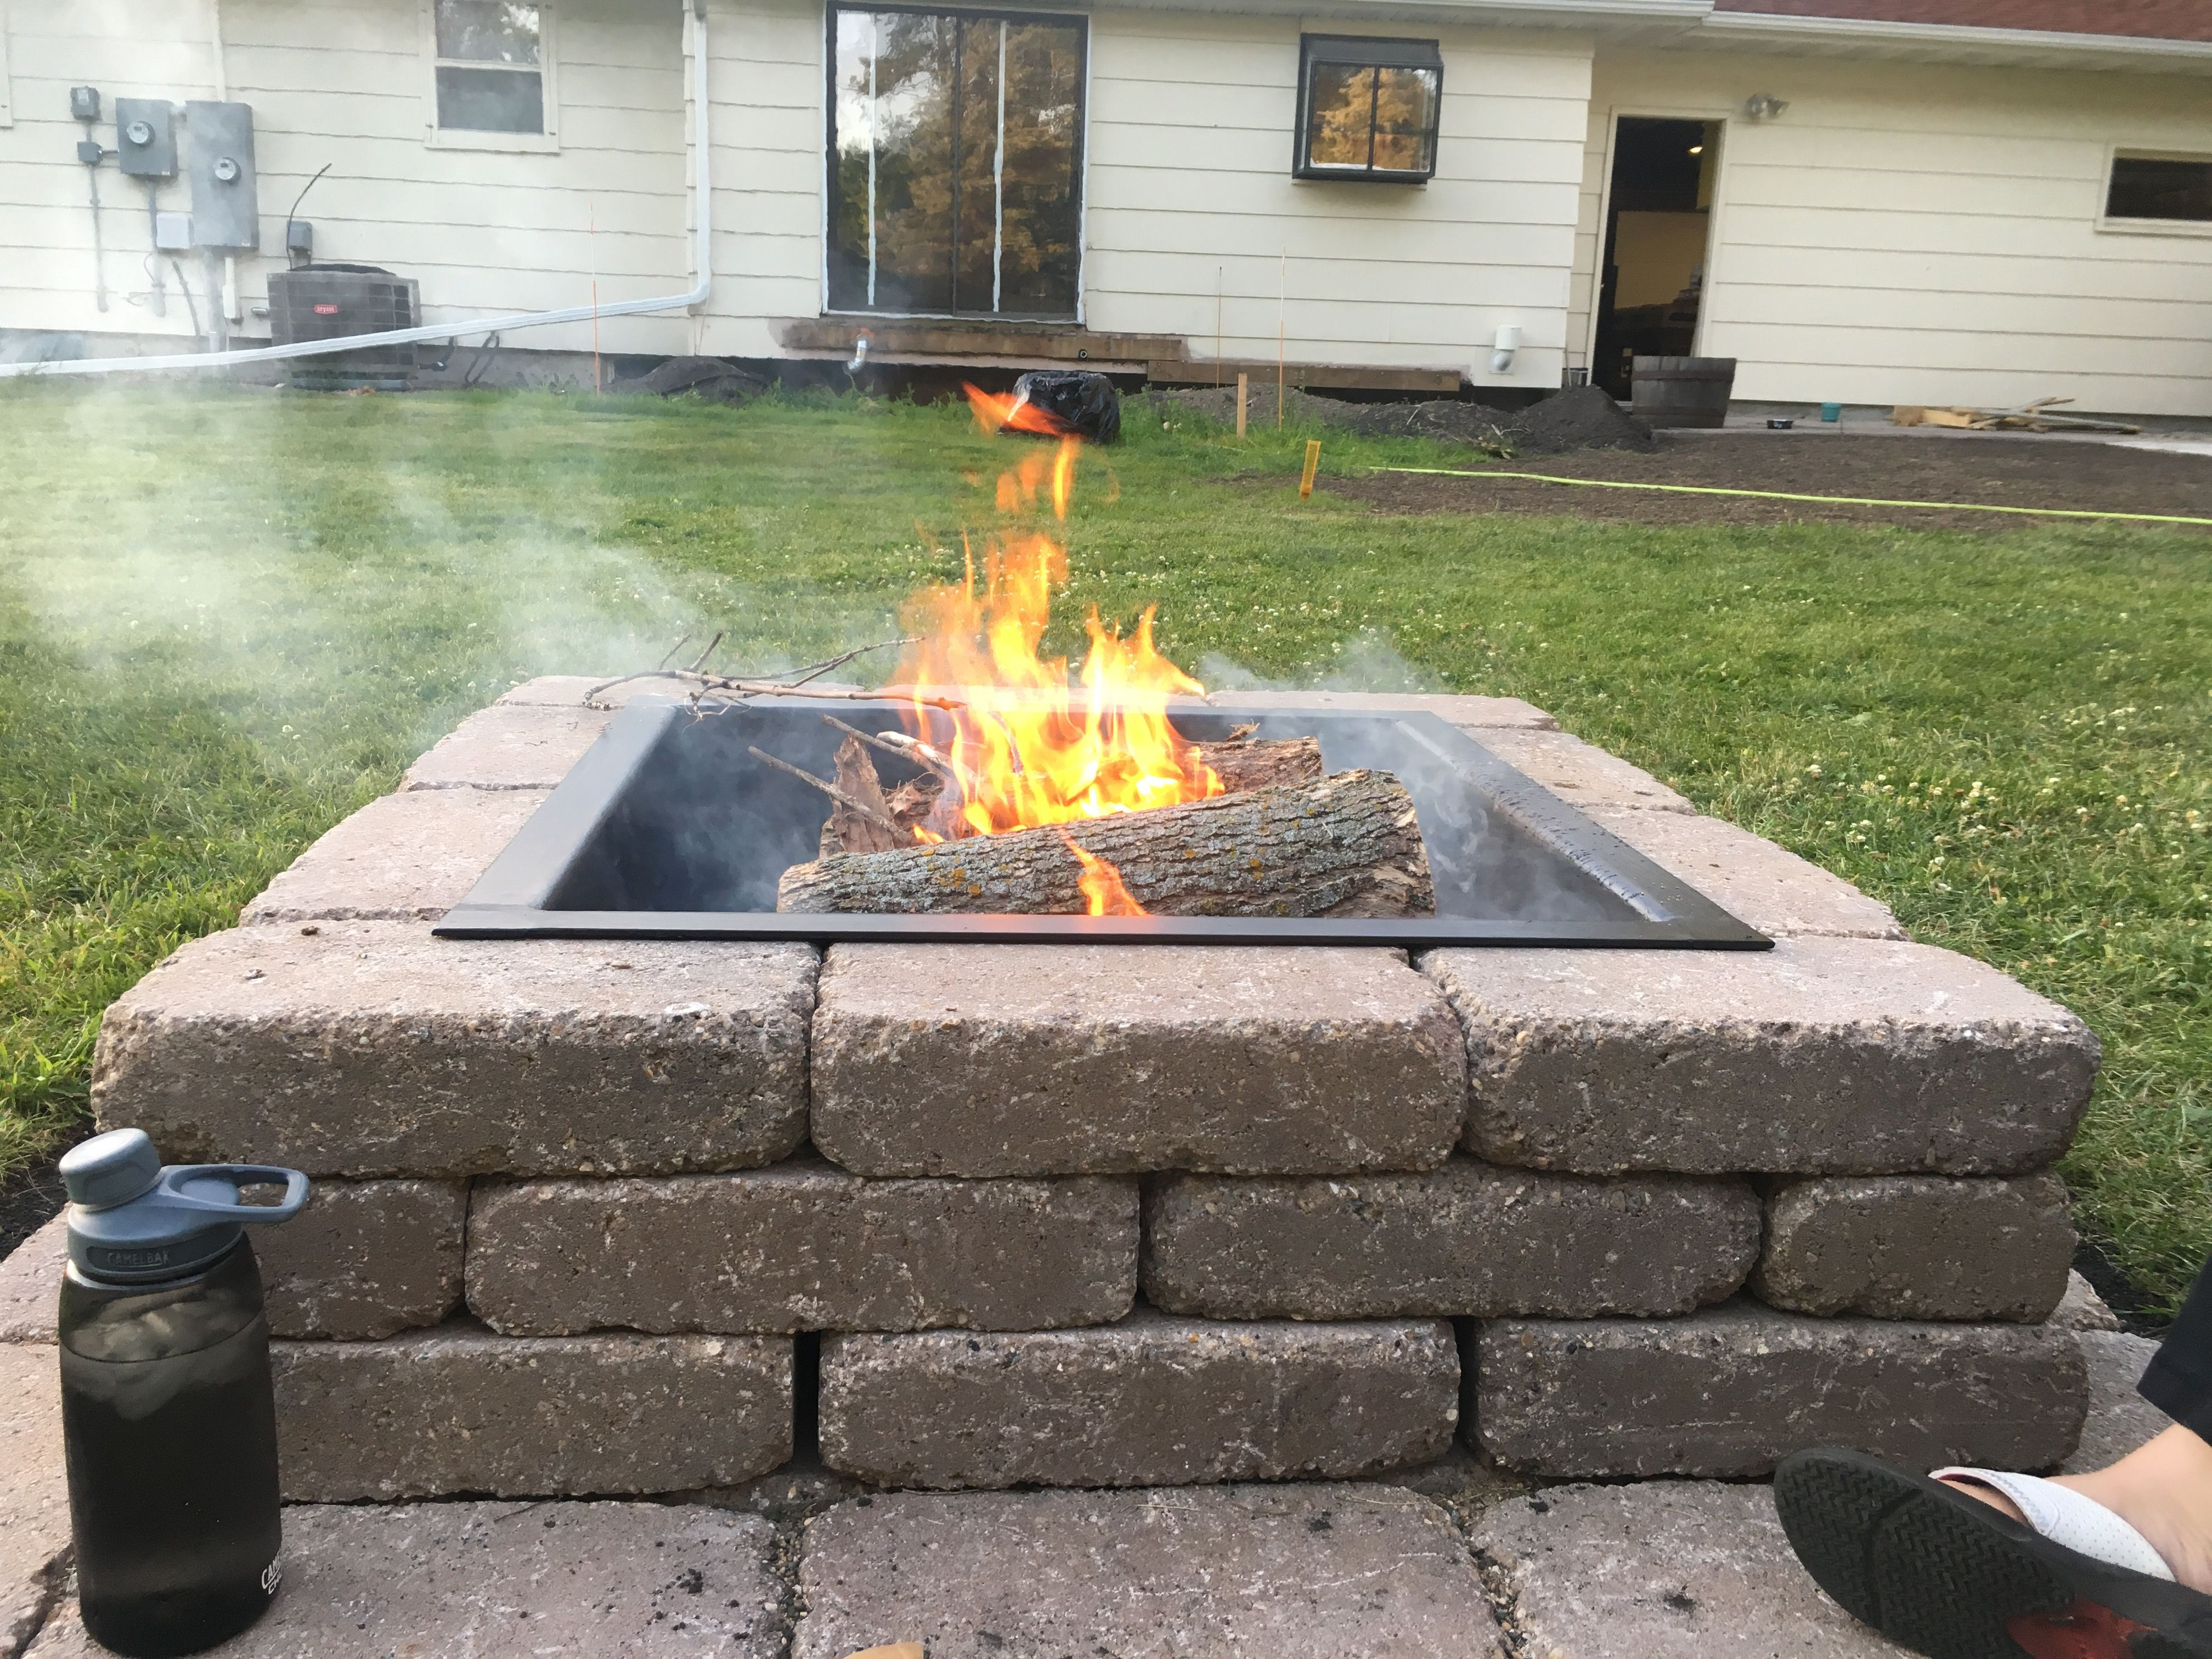 Building A Fire Pit  Skipping The Kit #Handmade #Crafts